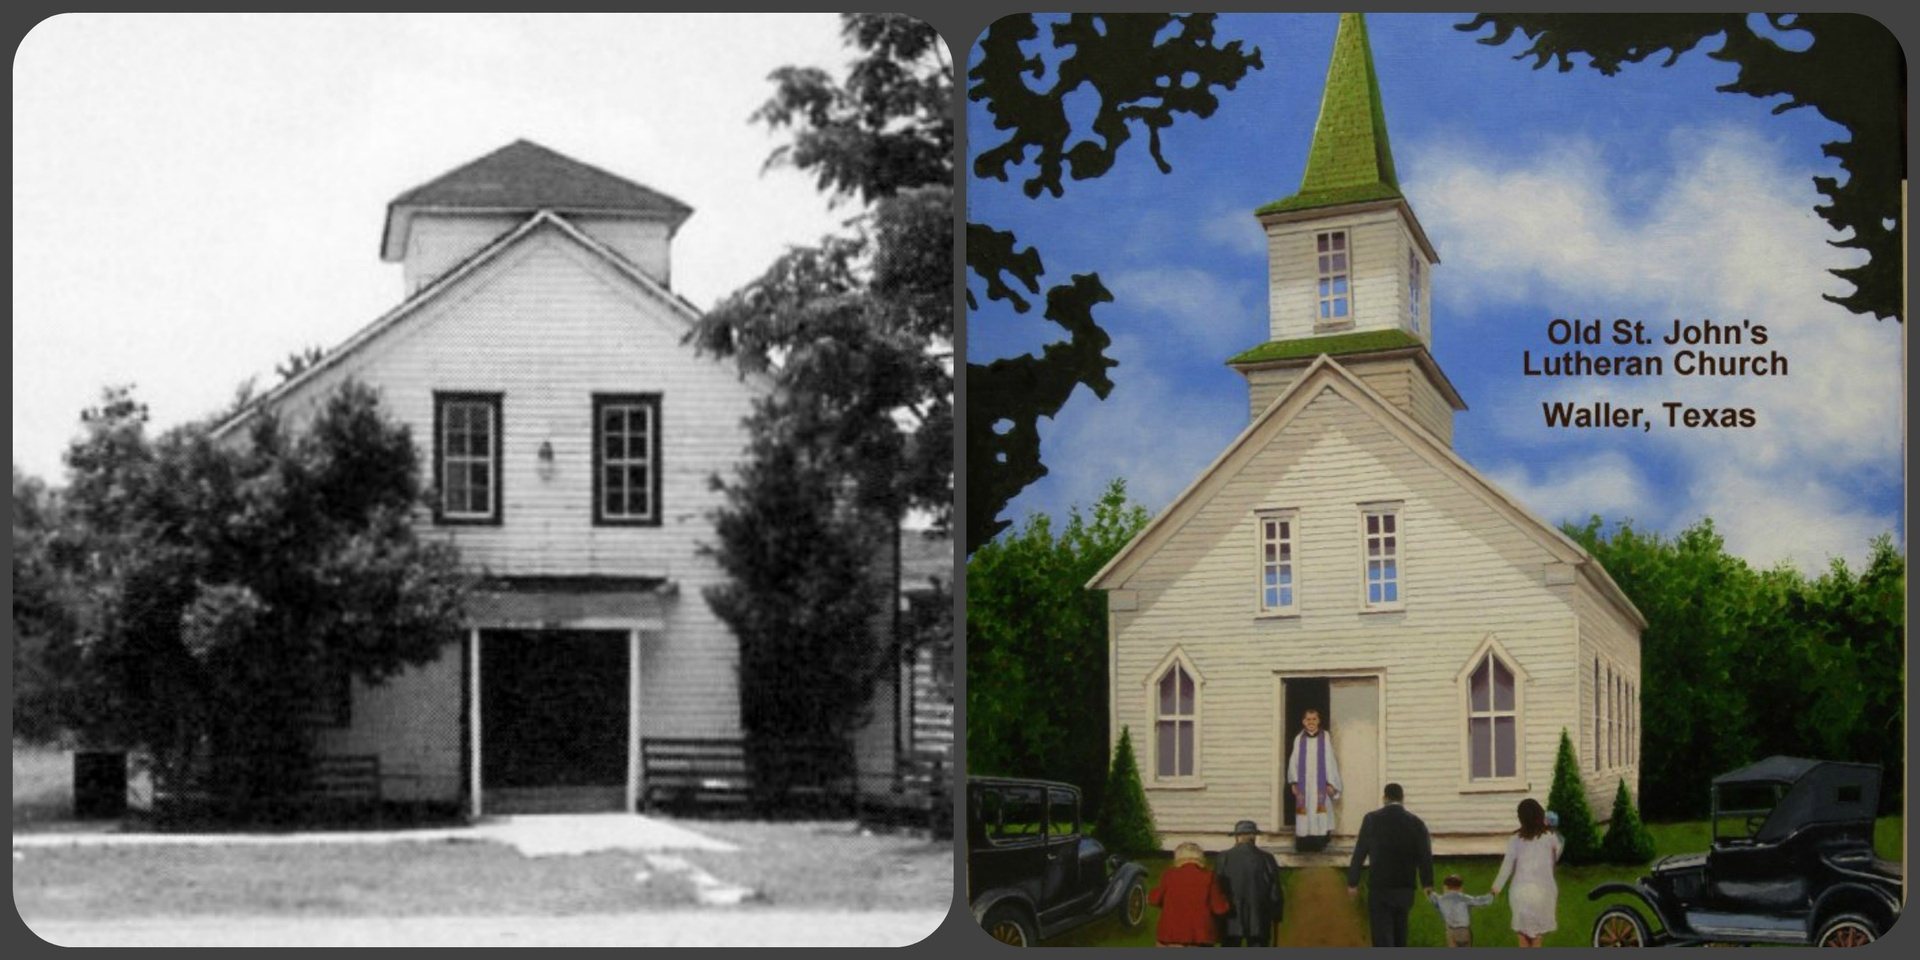 St. John's Lutheran Church in Waller 1995 & 1920s